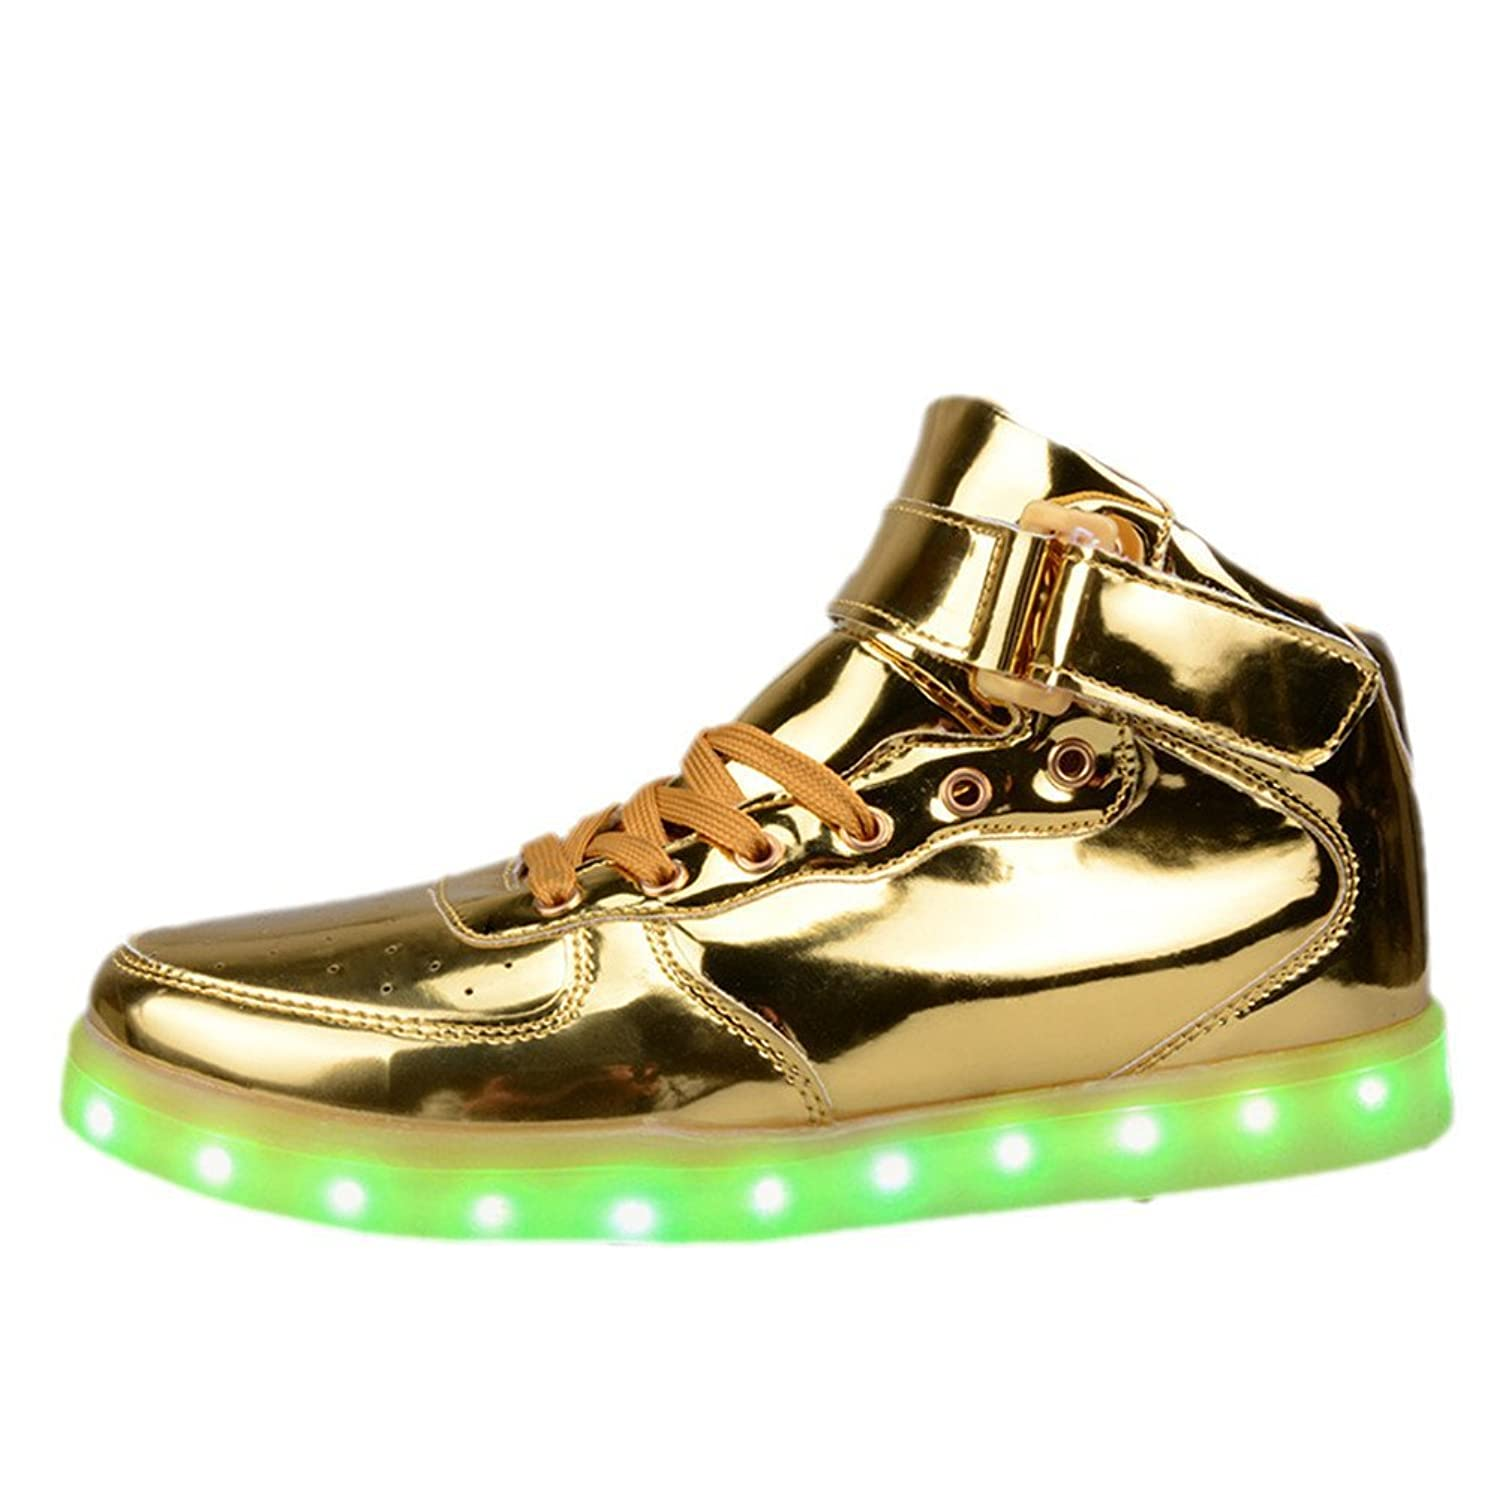 O&N Women Men Unisex High Top USB Charging LED Shoes Flashing Sneakers